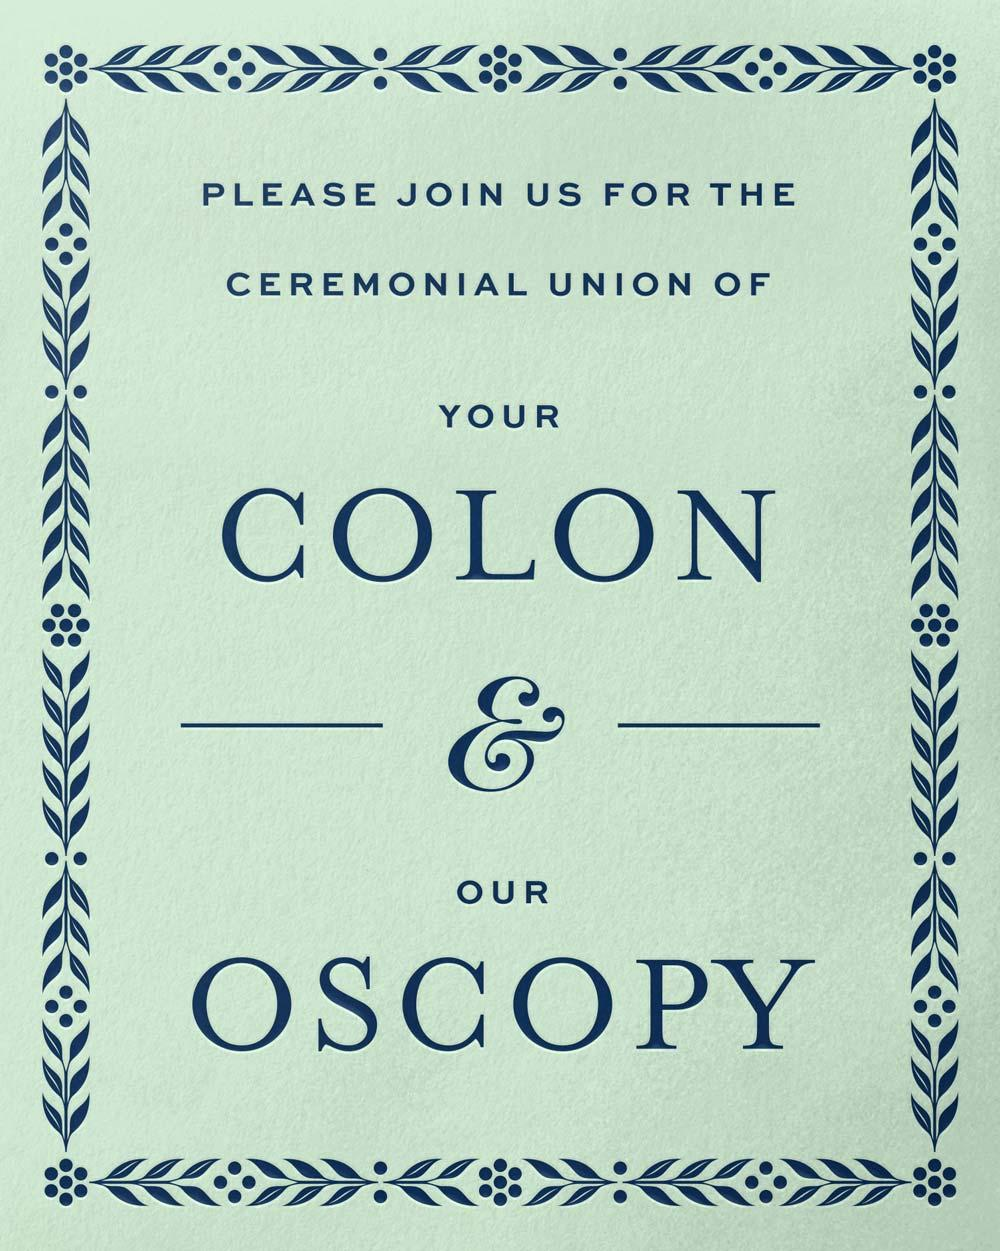 Please join us for the ceremonial union of Your Colon & Our Oscopy